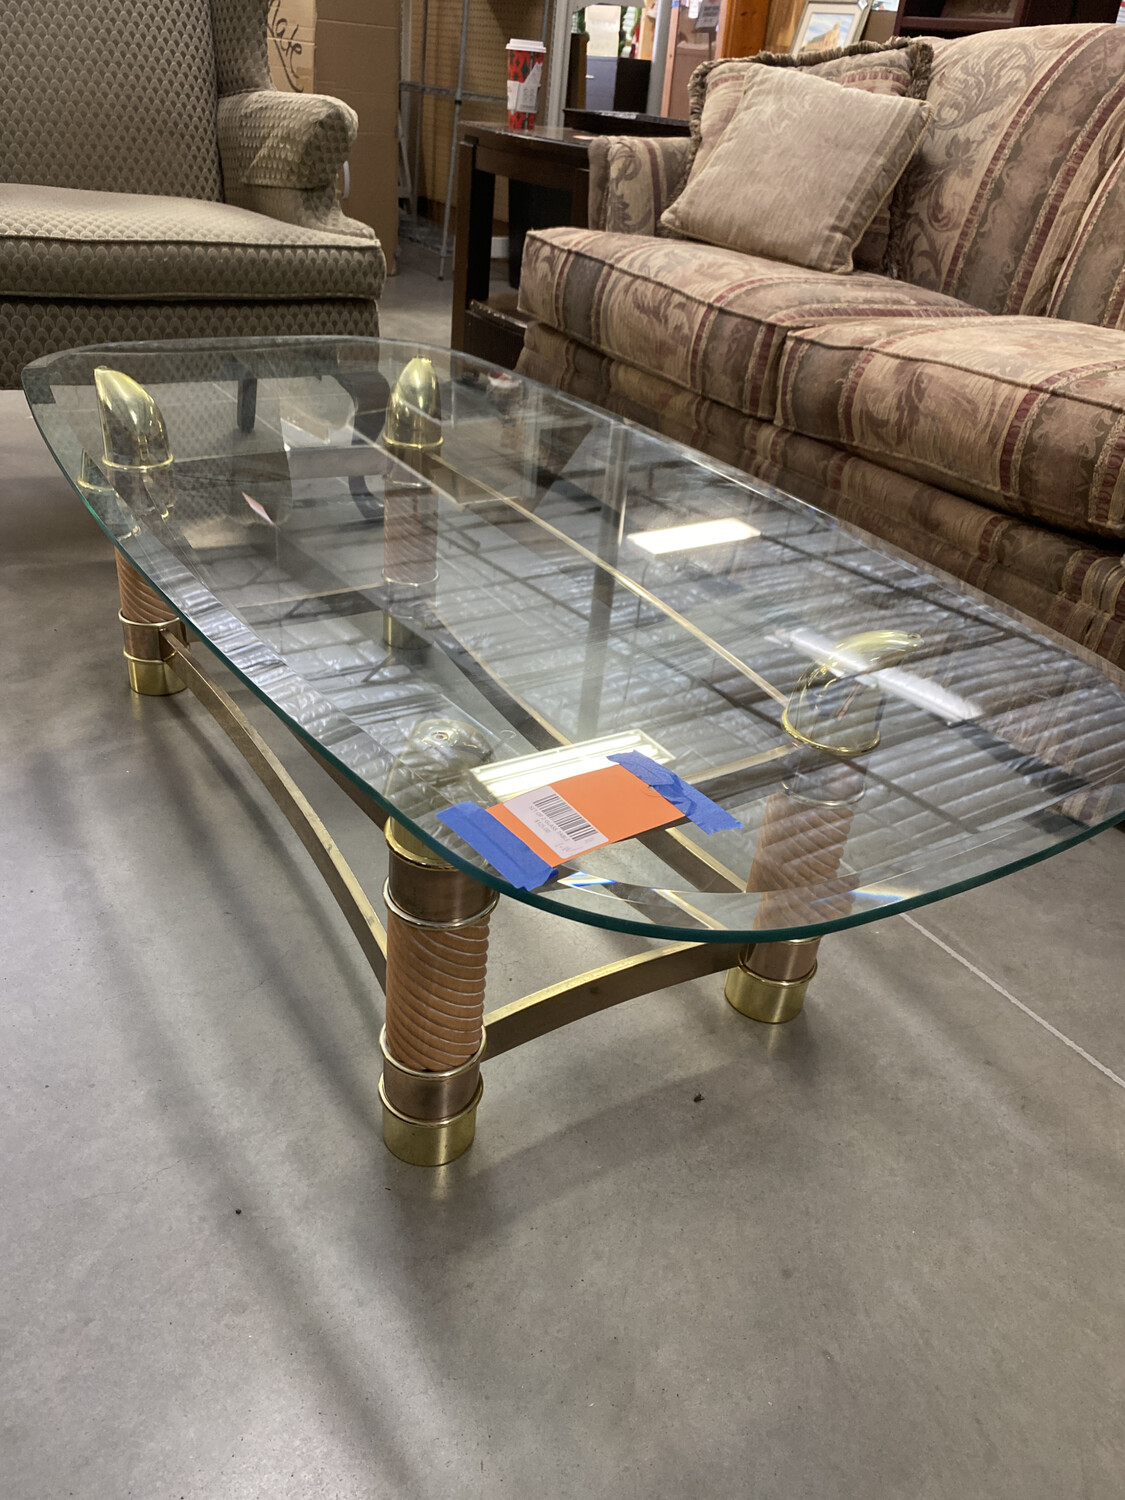 SET OF 2 GLASS TABLE